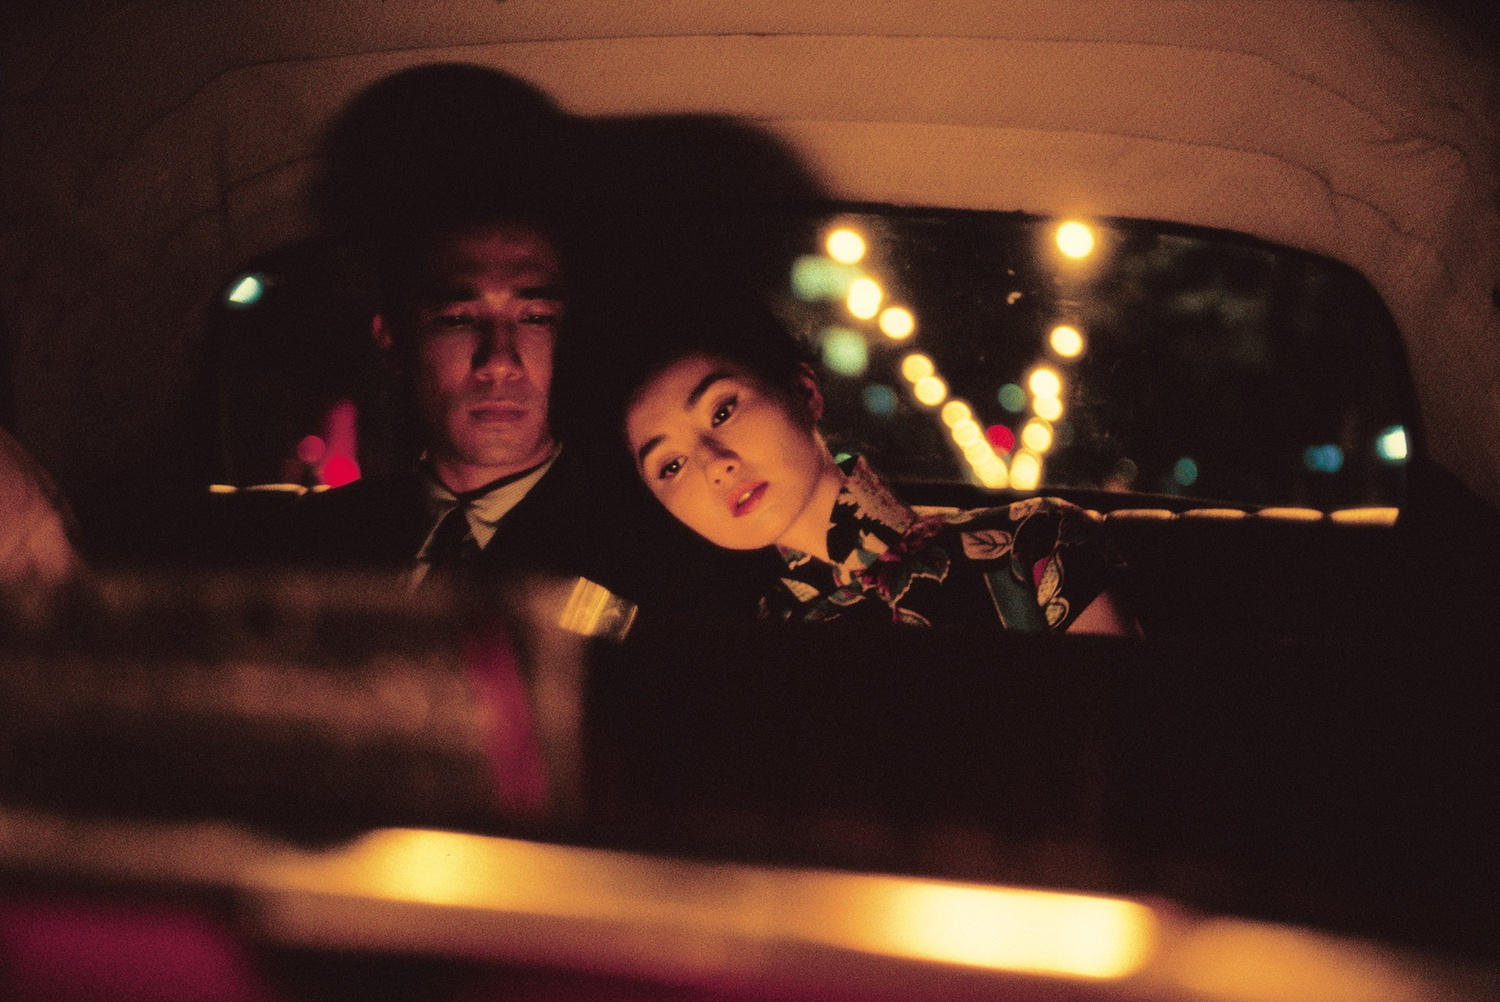 "Tony Leung Chiu-wai (left) stars as Chow Mo-wan and Maggie Cheung (right) stars as Su Li-zhen in ""In the Mood for Love"" (2000), directed by Wong Kar-wai."